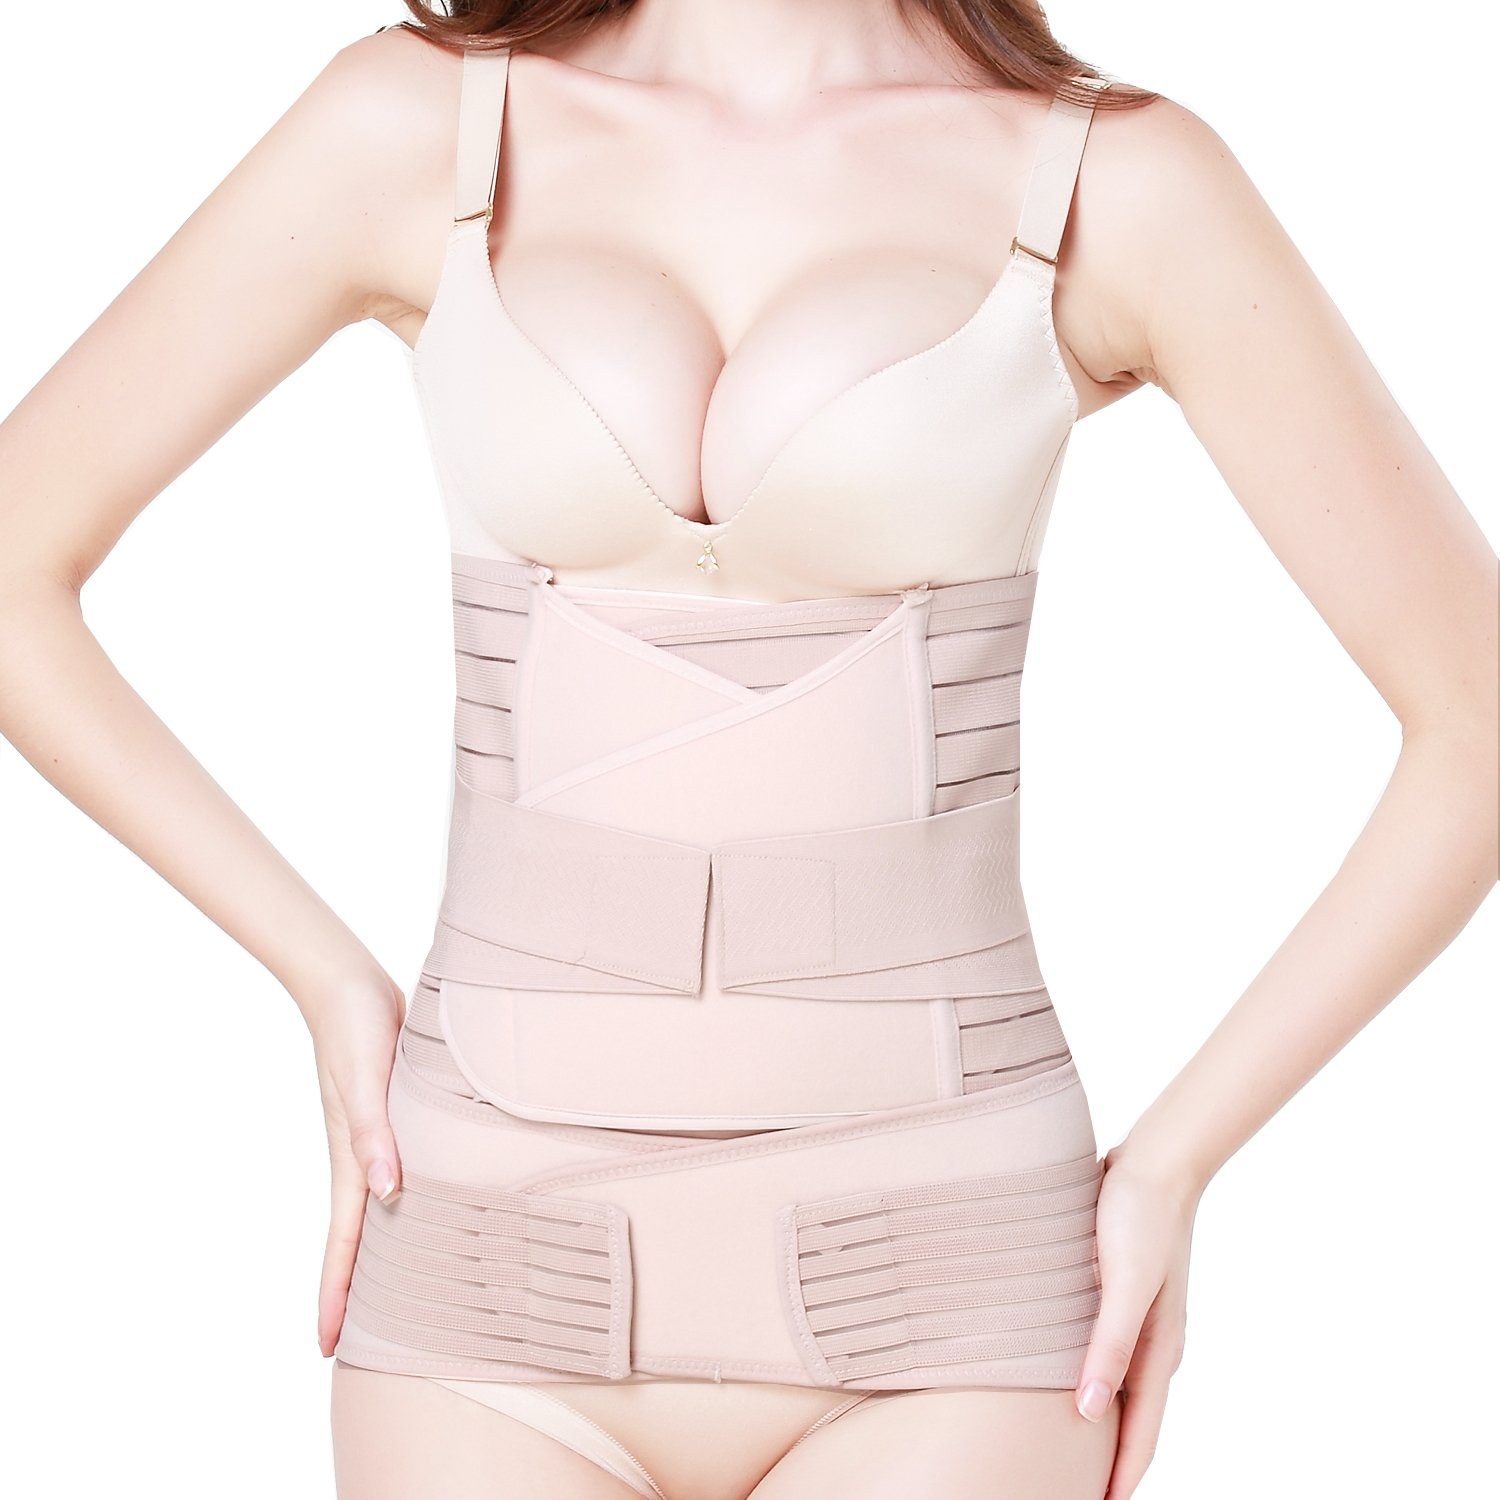 3 in 1 Postpartum Support - Recovery Belly/Waist/Pelvis Belt Shapewear Waist Trainer Belts TR-CL-0001